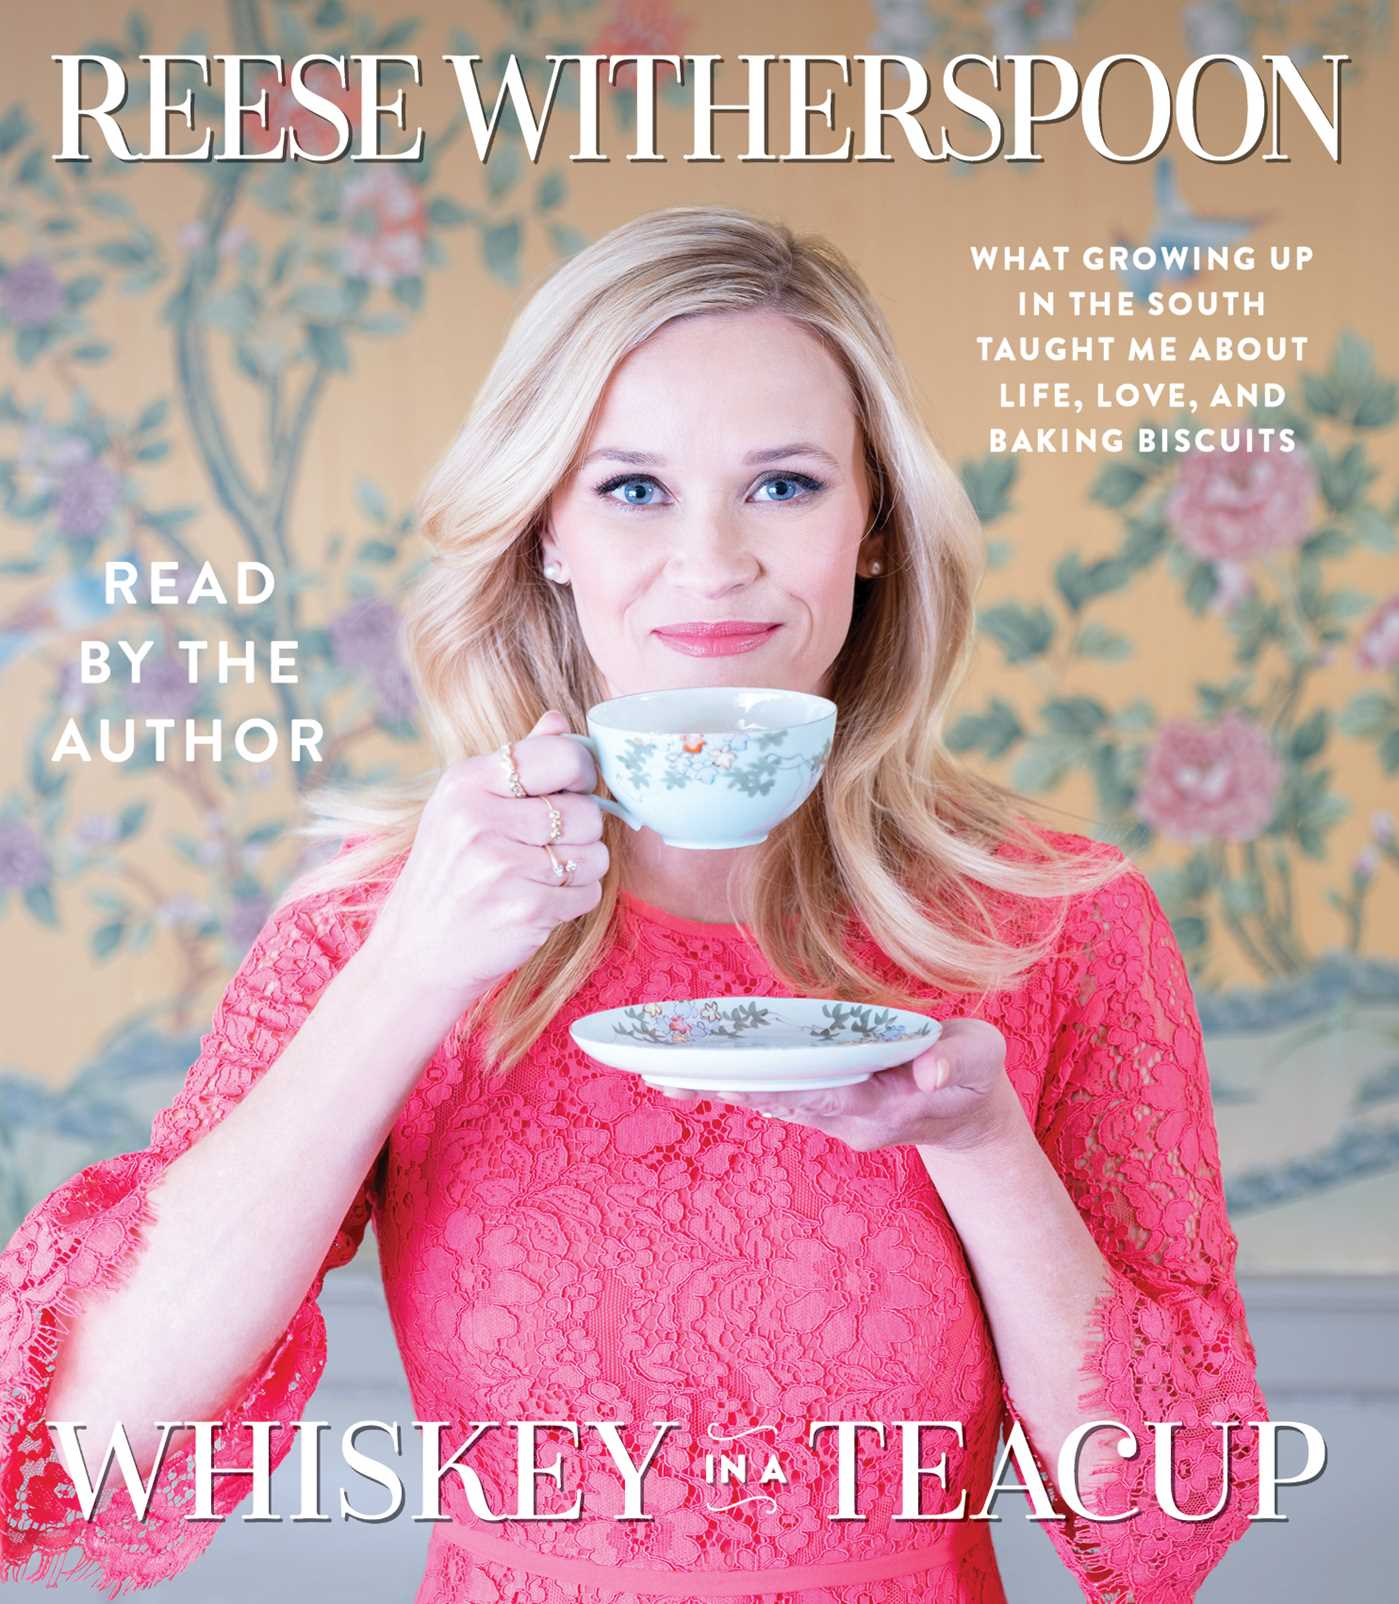 Whiskey in a teacup 9781508258629 hr